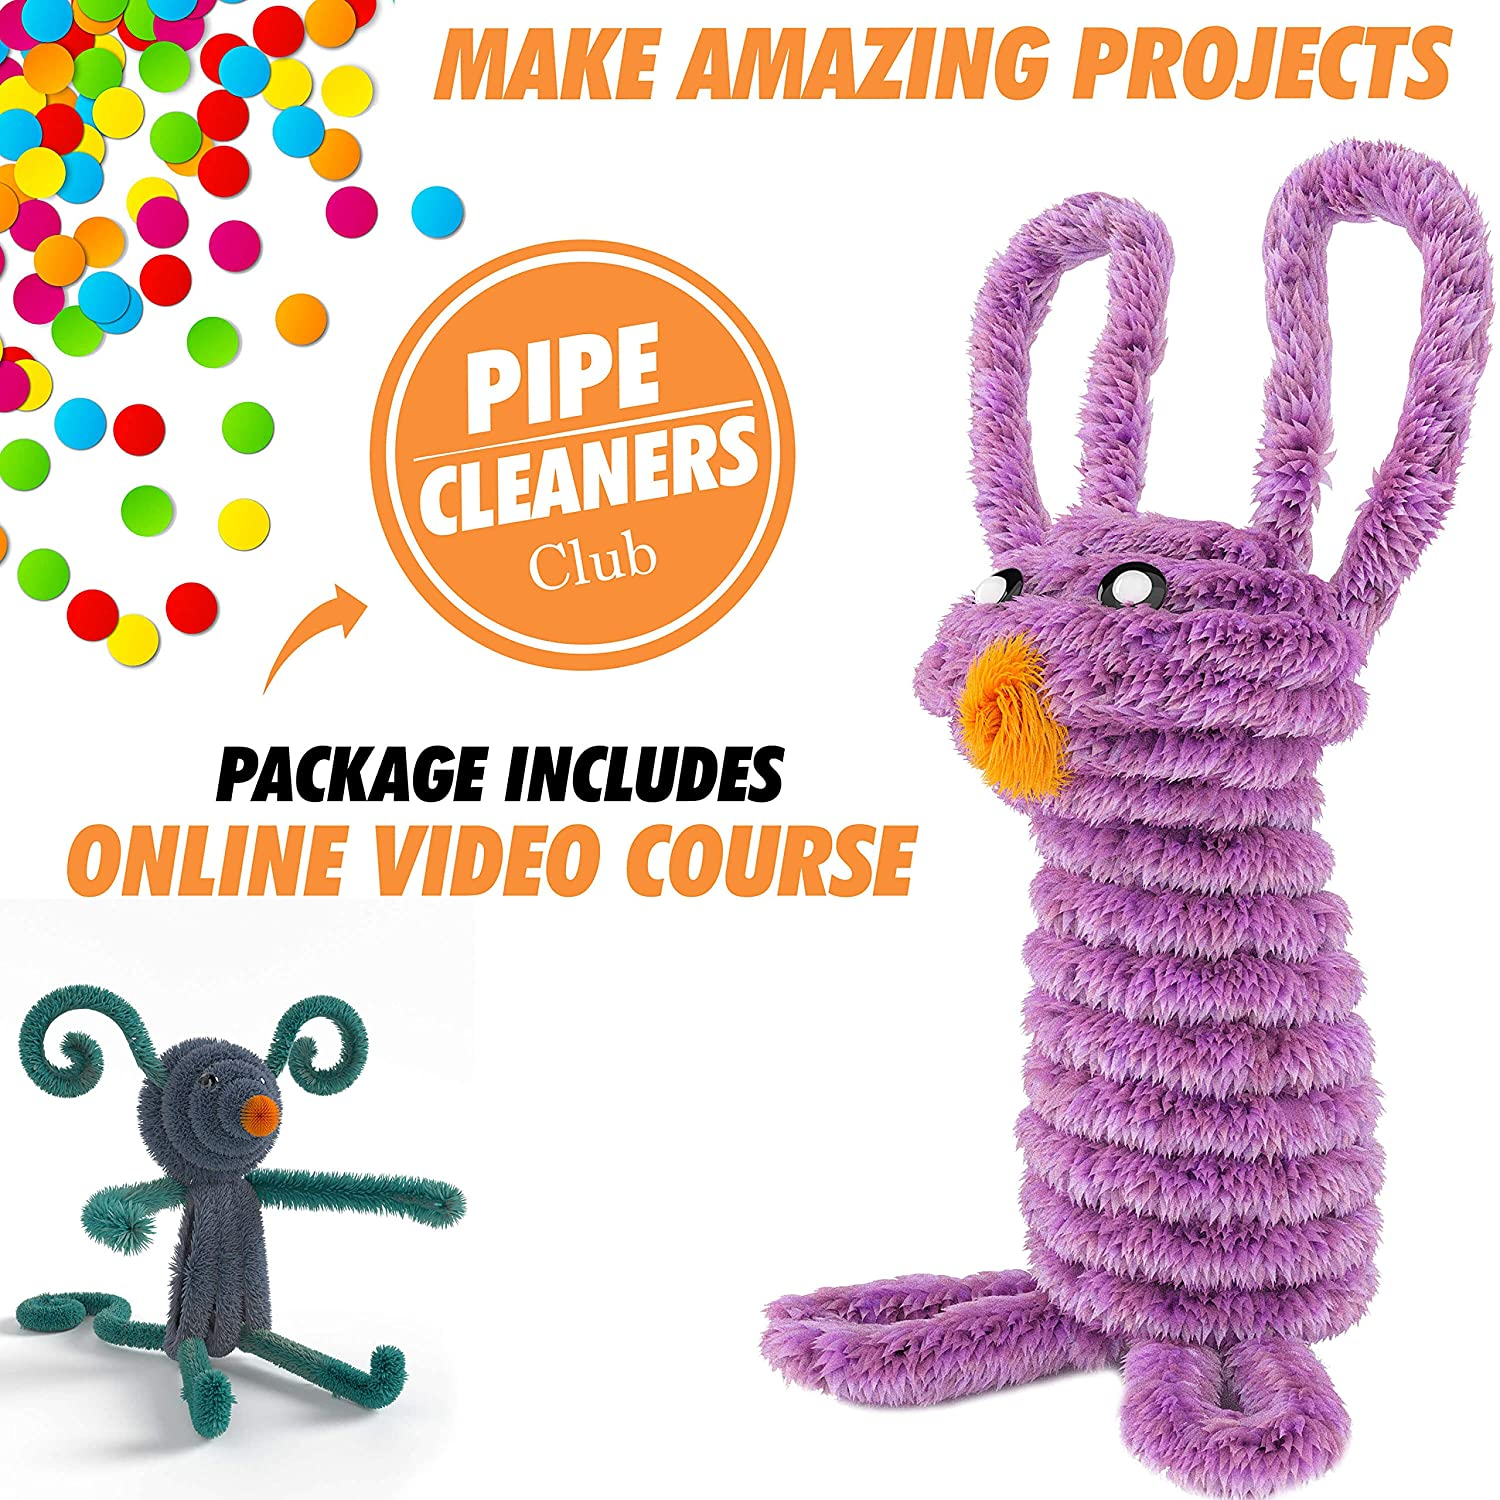 Fun DIY Art 6 mm x 12 inch Pipe Cleaners 30 Assorted Colors Pipe Cleaners for Decorations and Creative Crafts 350 pcs Chenille Stems for DIY Art